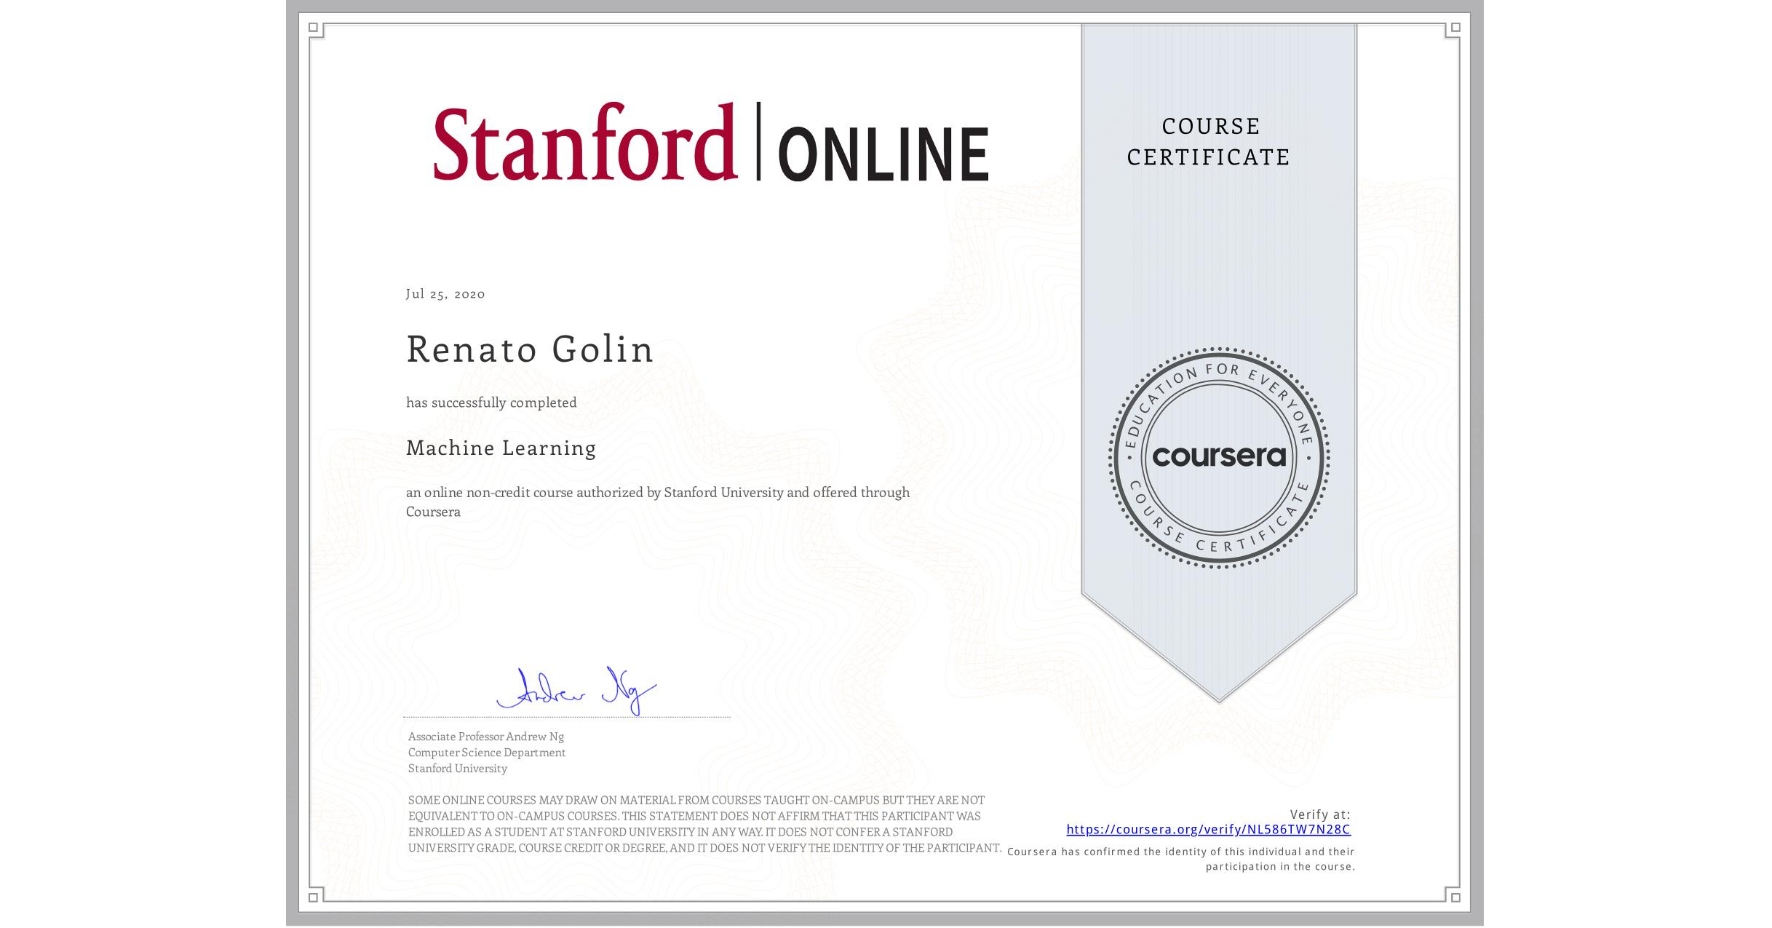 View certificate for Renato Golin, Machine Learning, an online non-credit course authorized by Stanford University and offered through Coursera